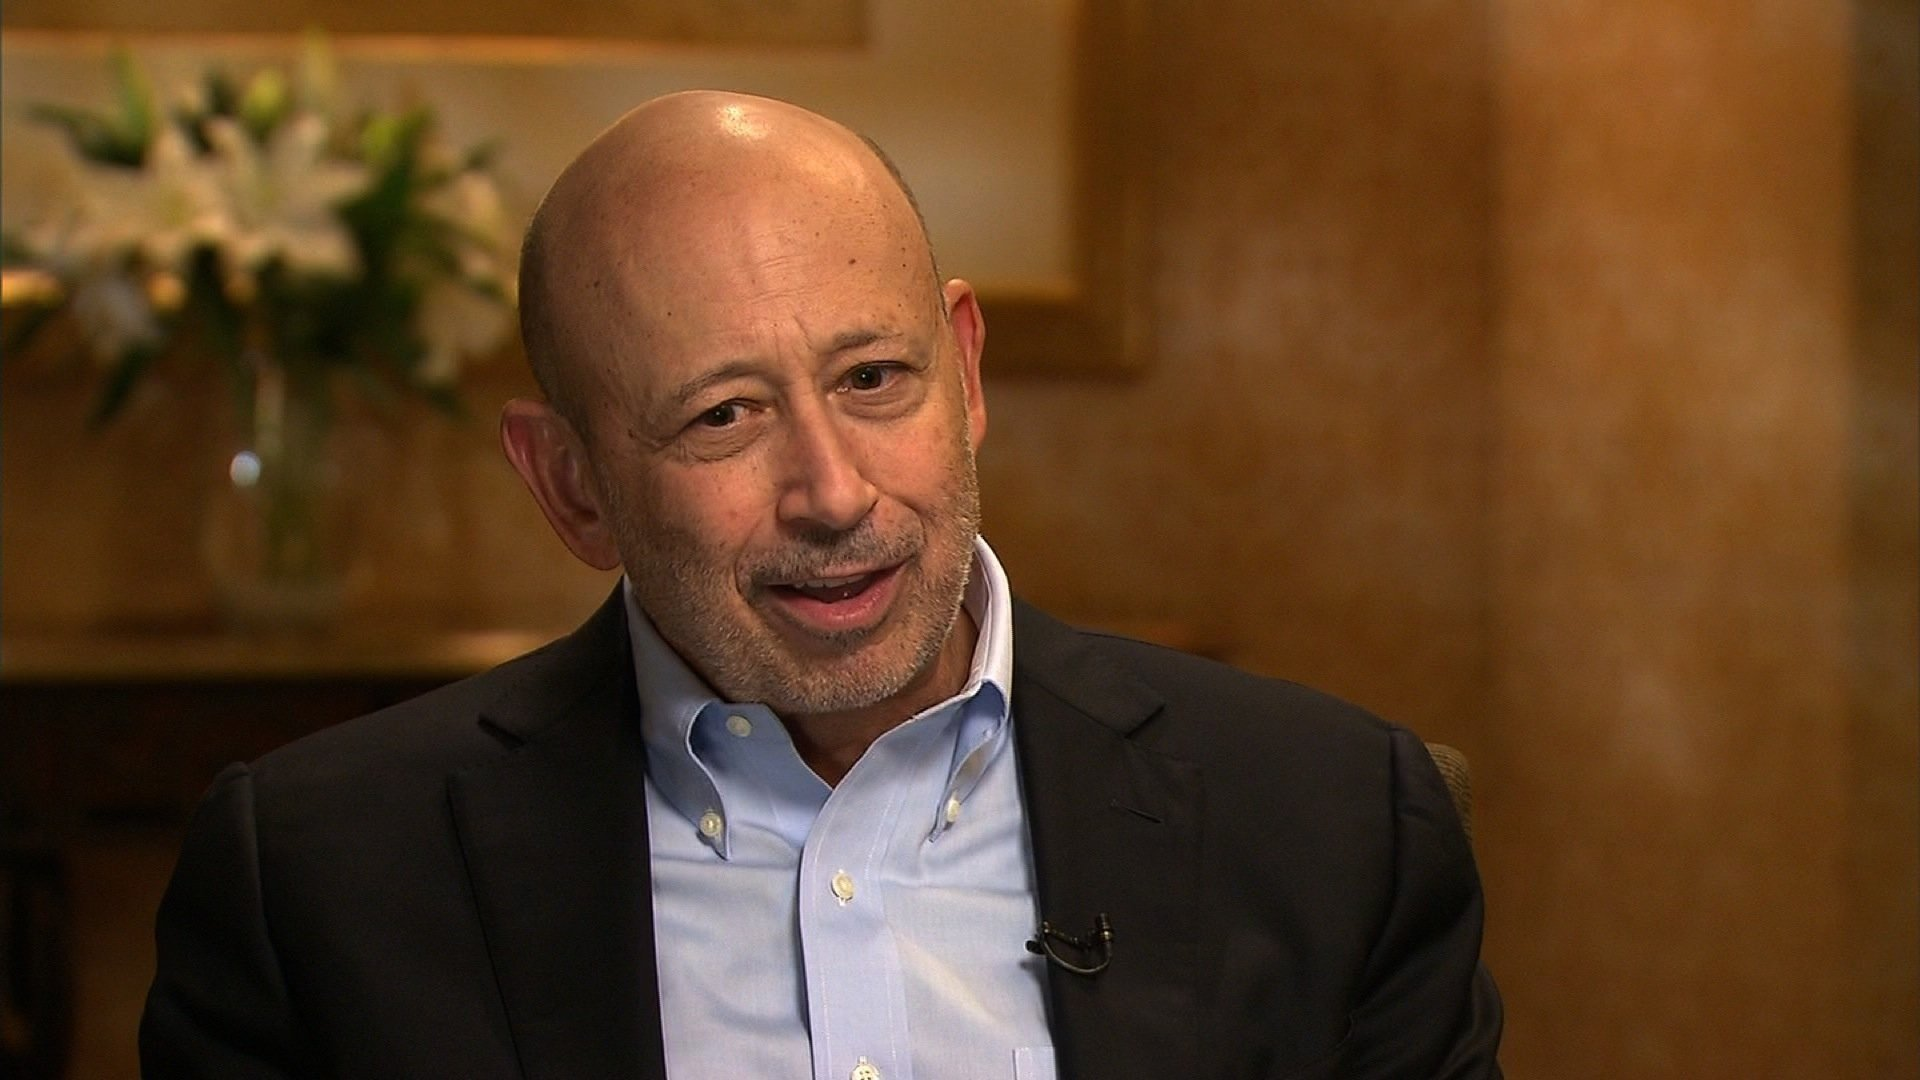 Goldman Sachs boss Blankfein 'planning to exit' as early as year-end